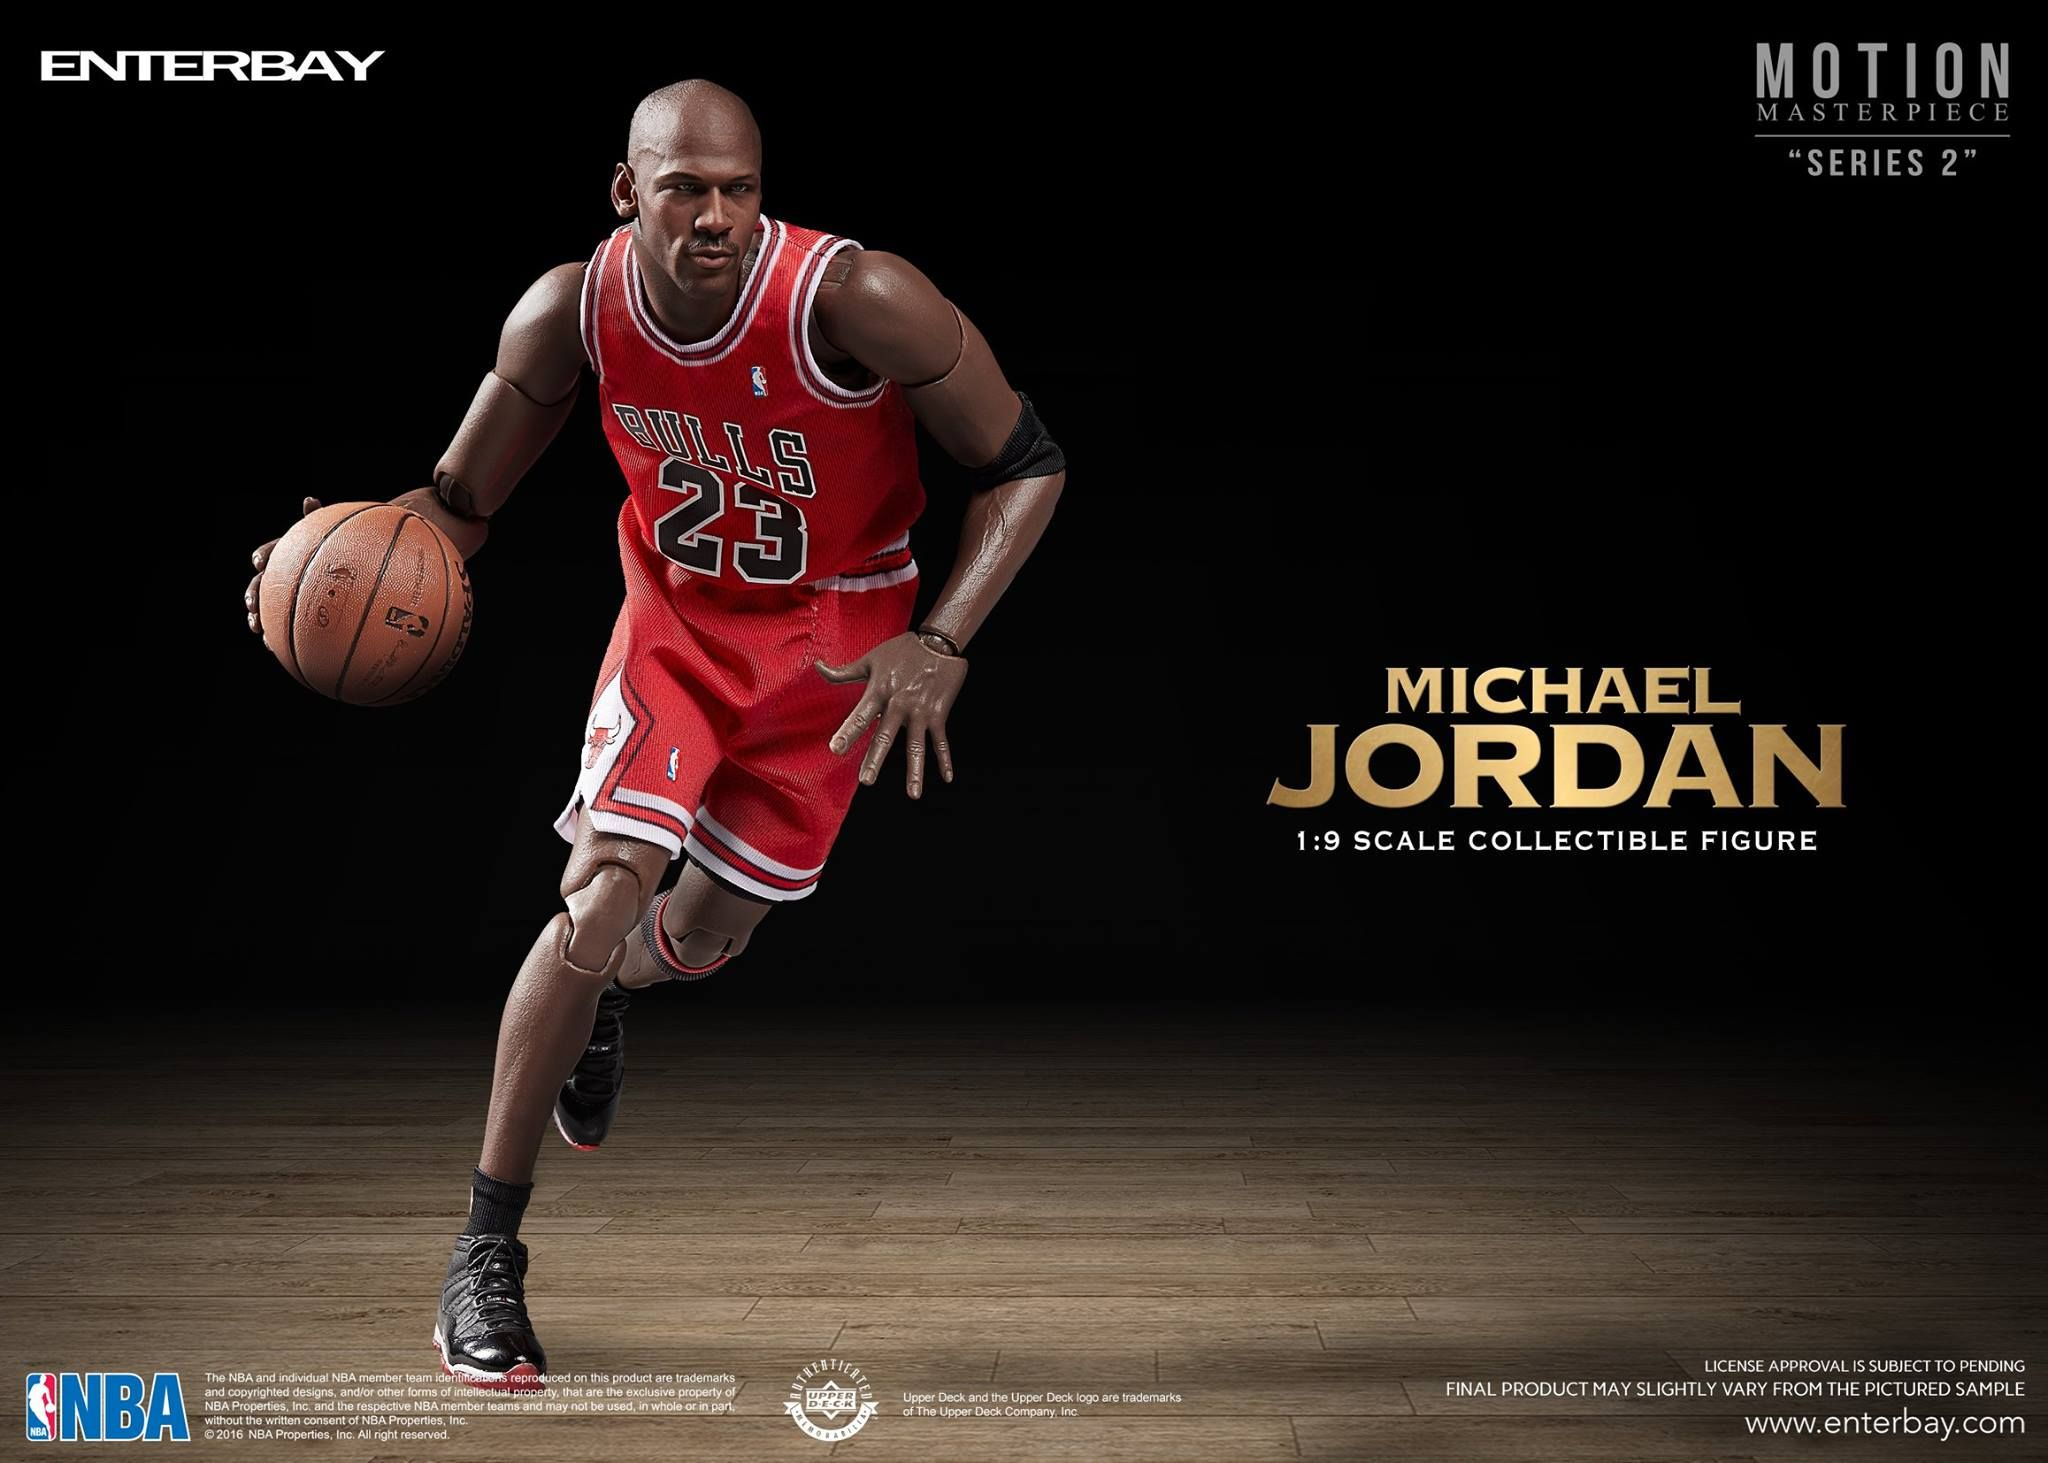 separation shoes 2252b b4112 Michael Jordan 1 9 Scale Collectible Figure by Enterbay